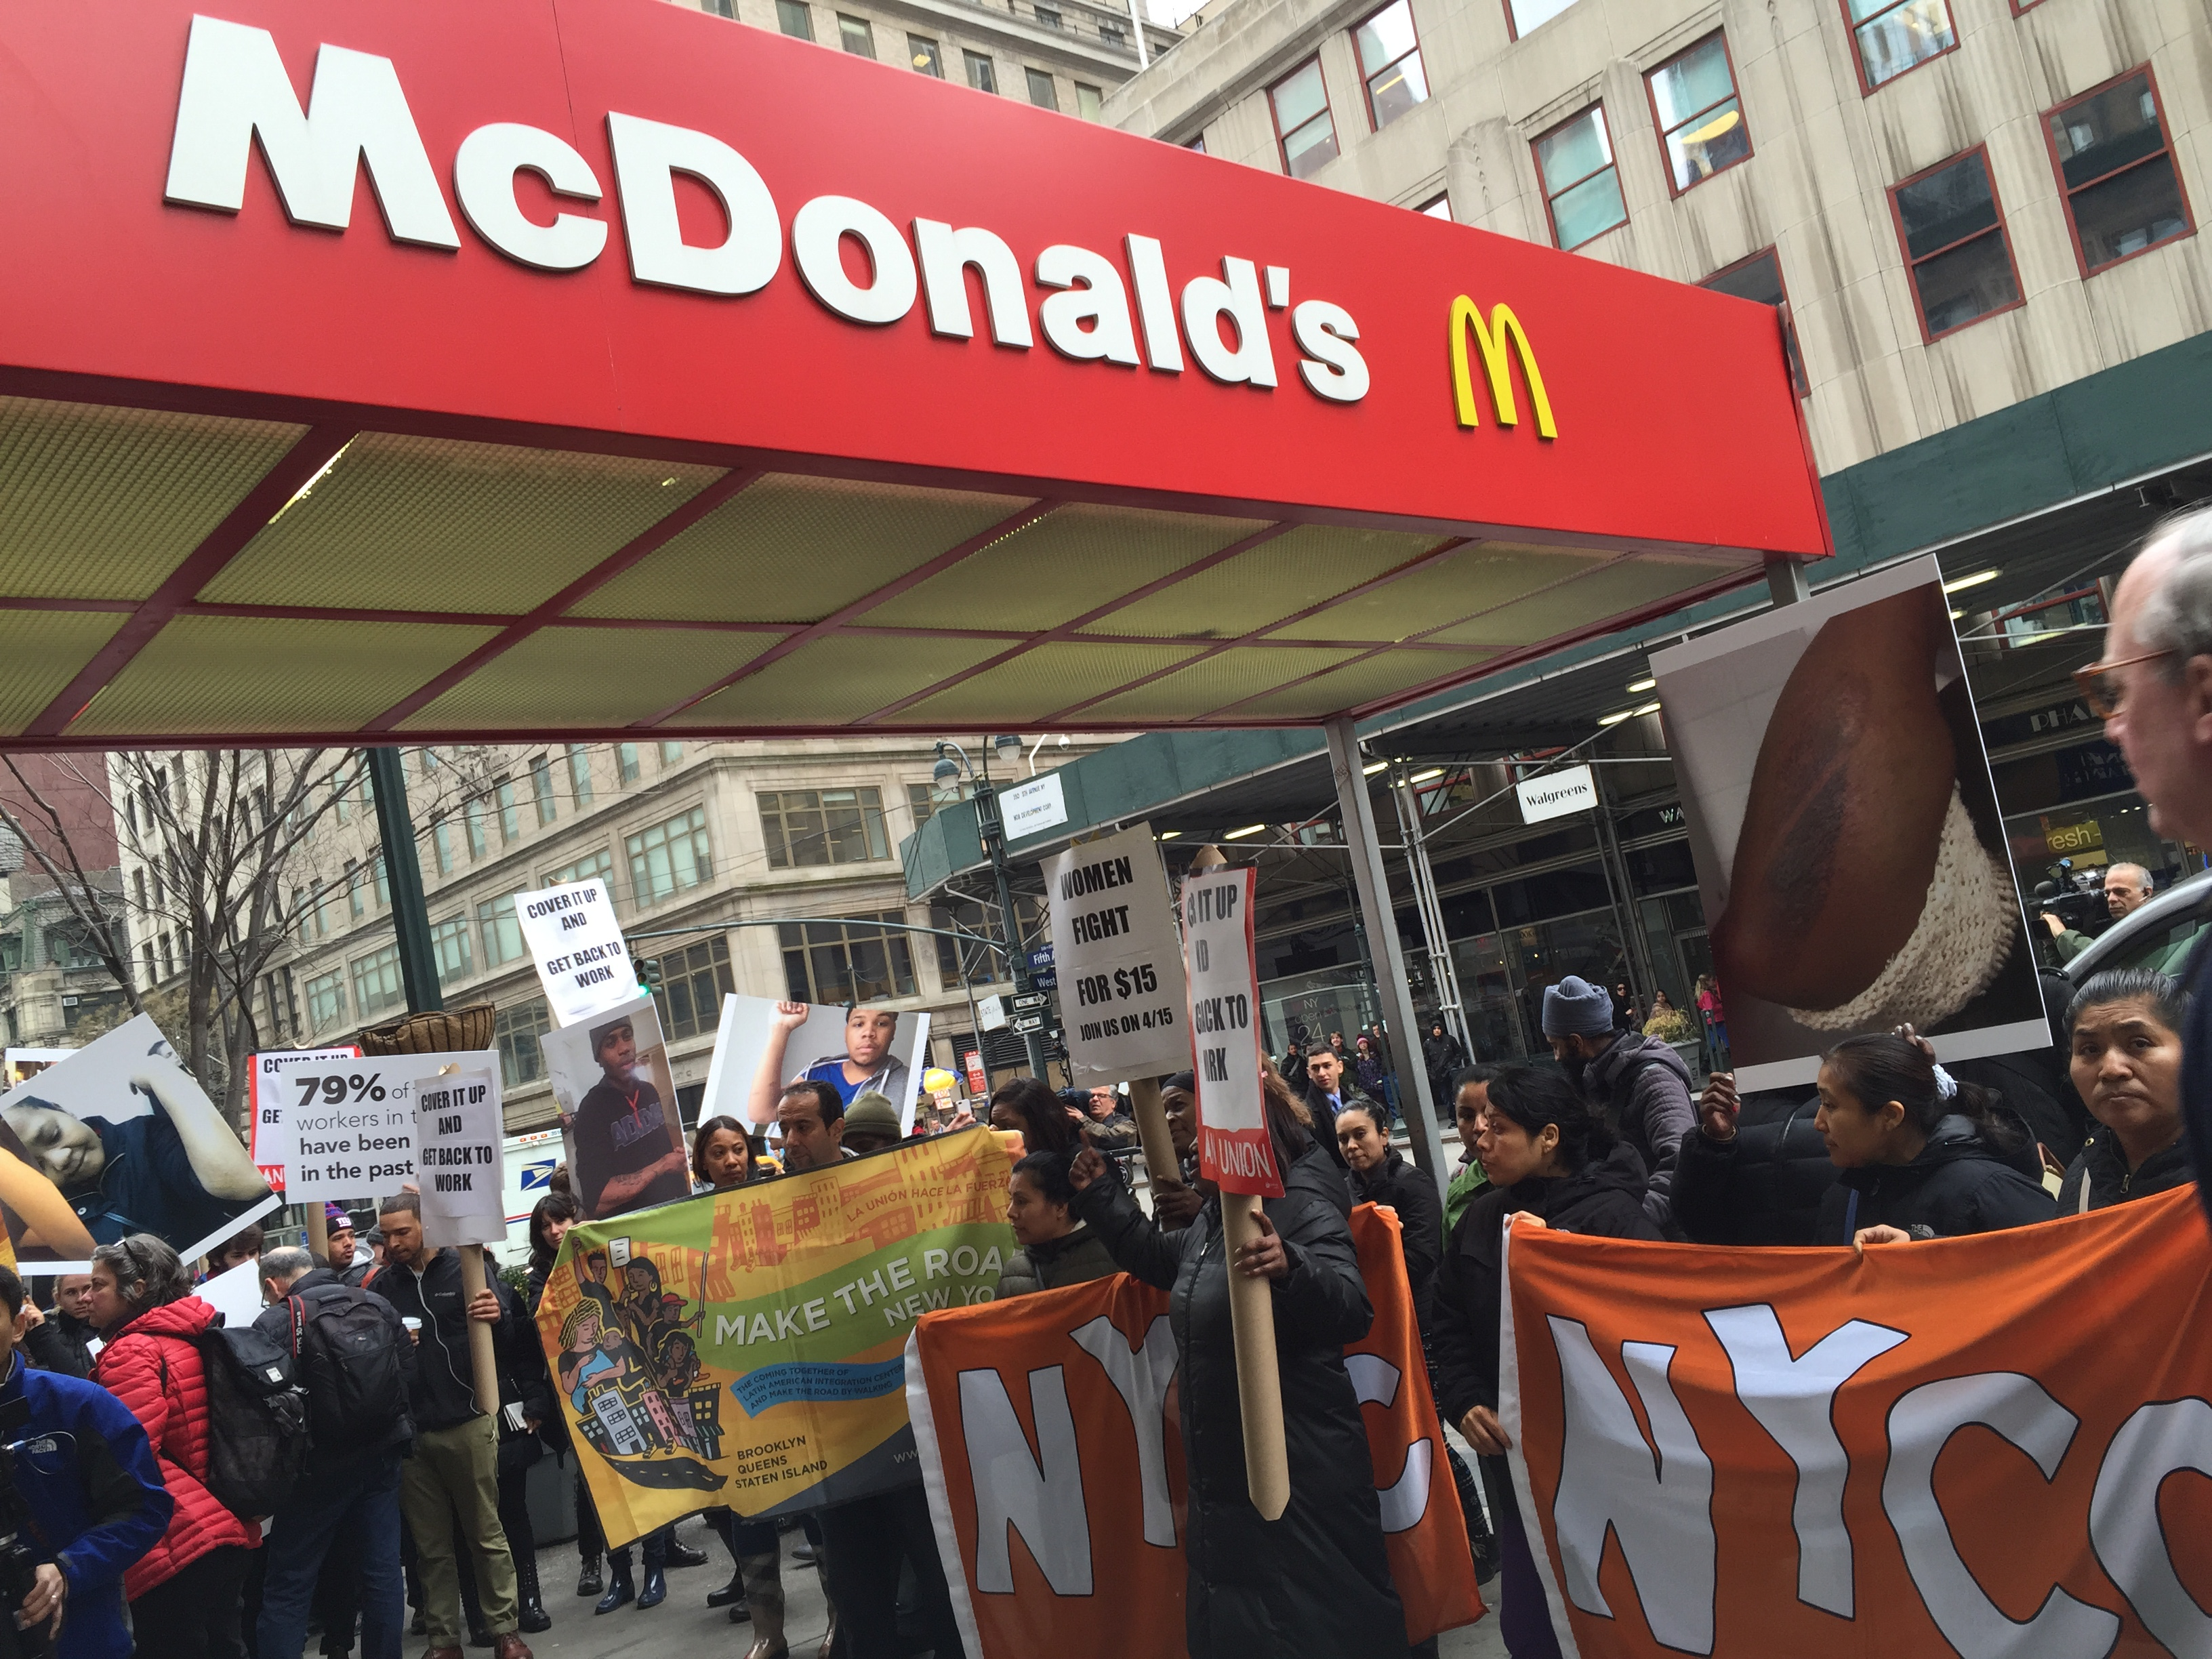 Workers rally in front of the McDonald's in Herald Square calling for better working conditions and higher wages (Ben Shapiro/New York Observer)